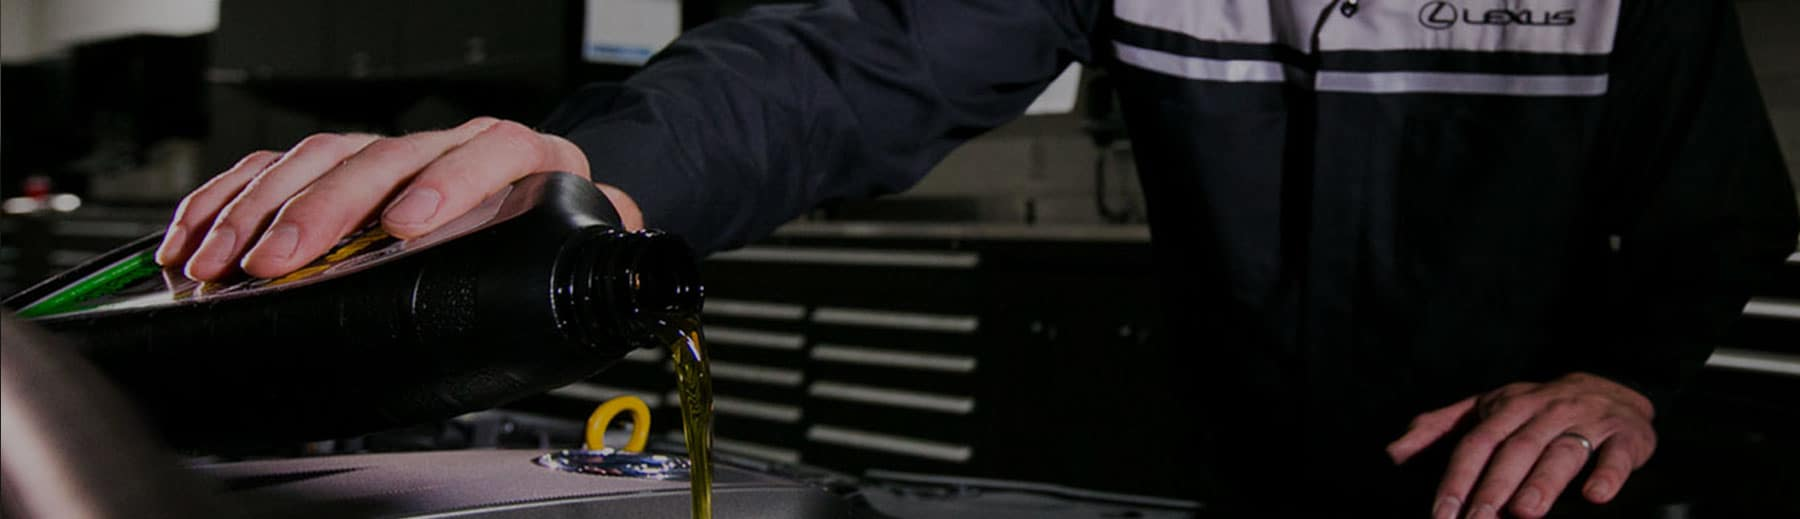 Service Technician pouring new oil into the engine.